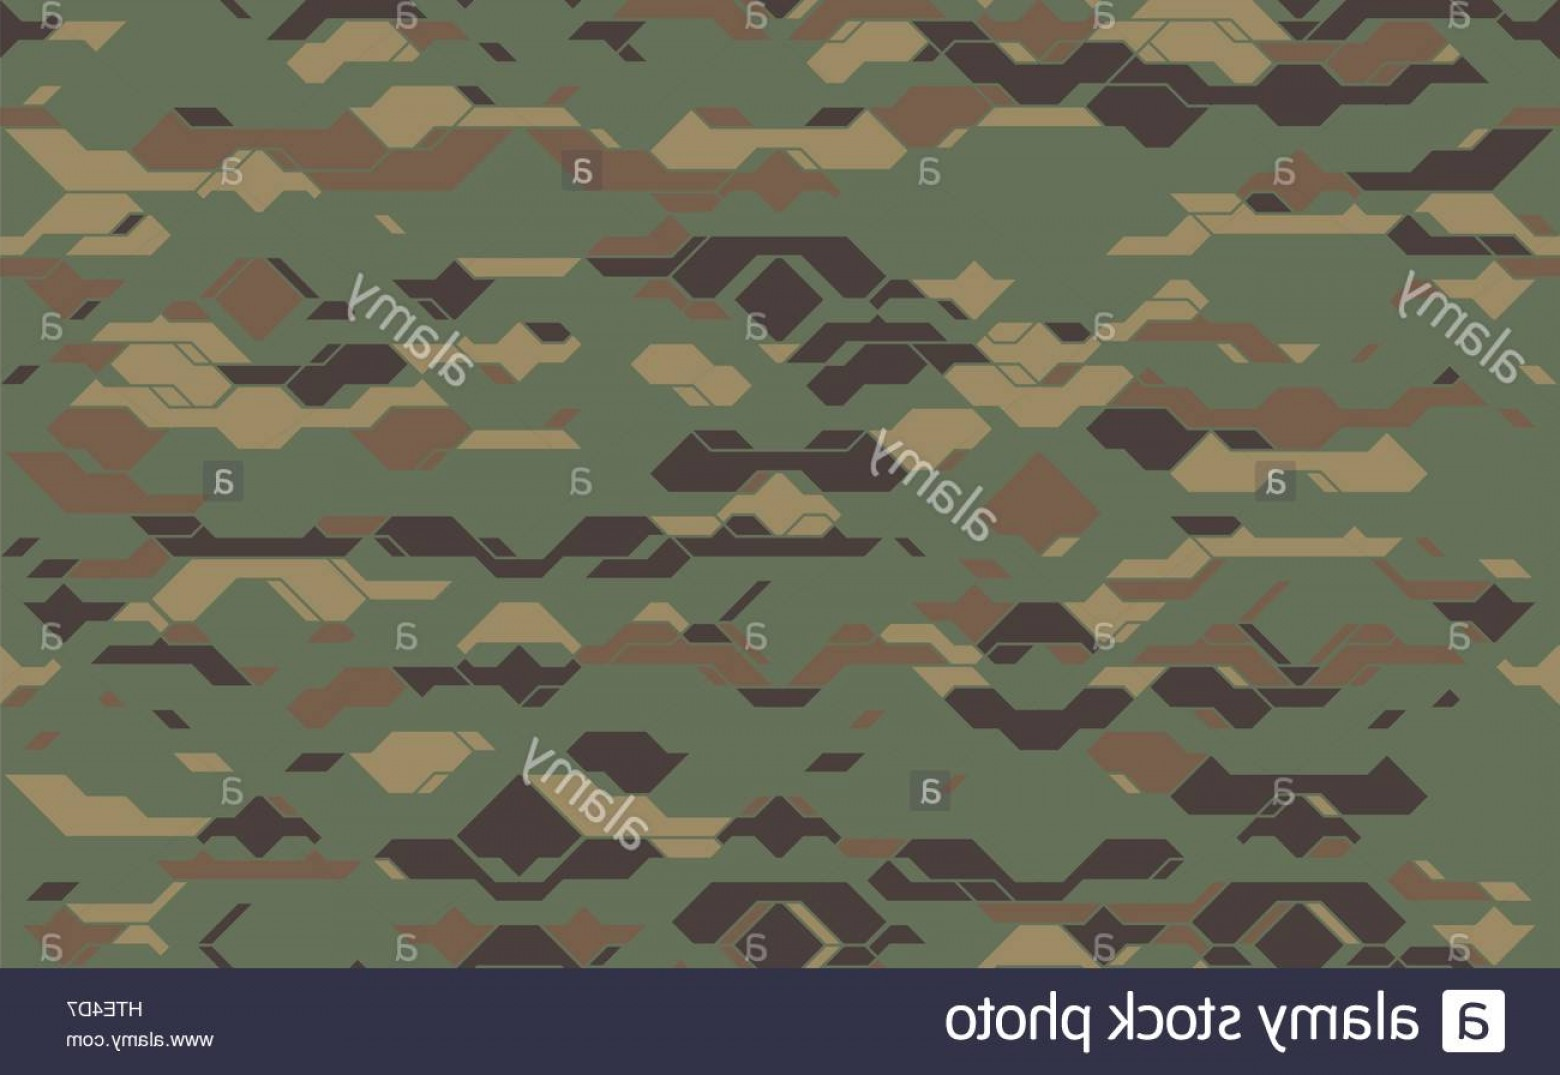 Army Camouflage Pattern Vector: Stock Photo Seamless Modern Army Camouflage Fabric Texture Abstract Vector Futuristic